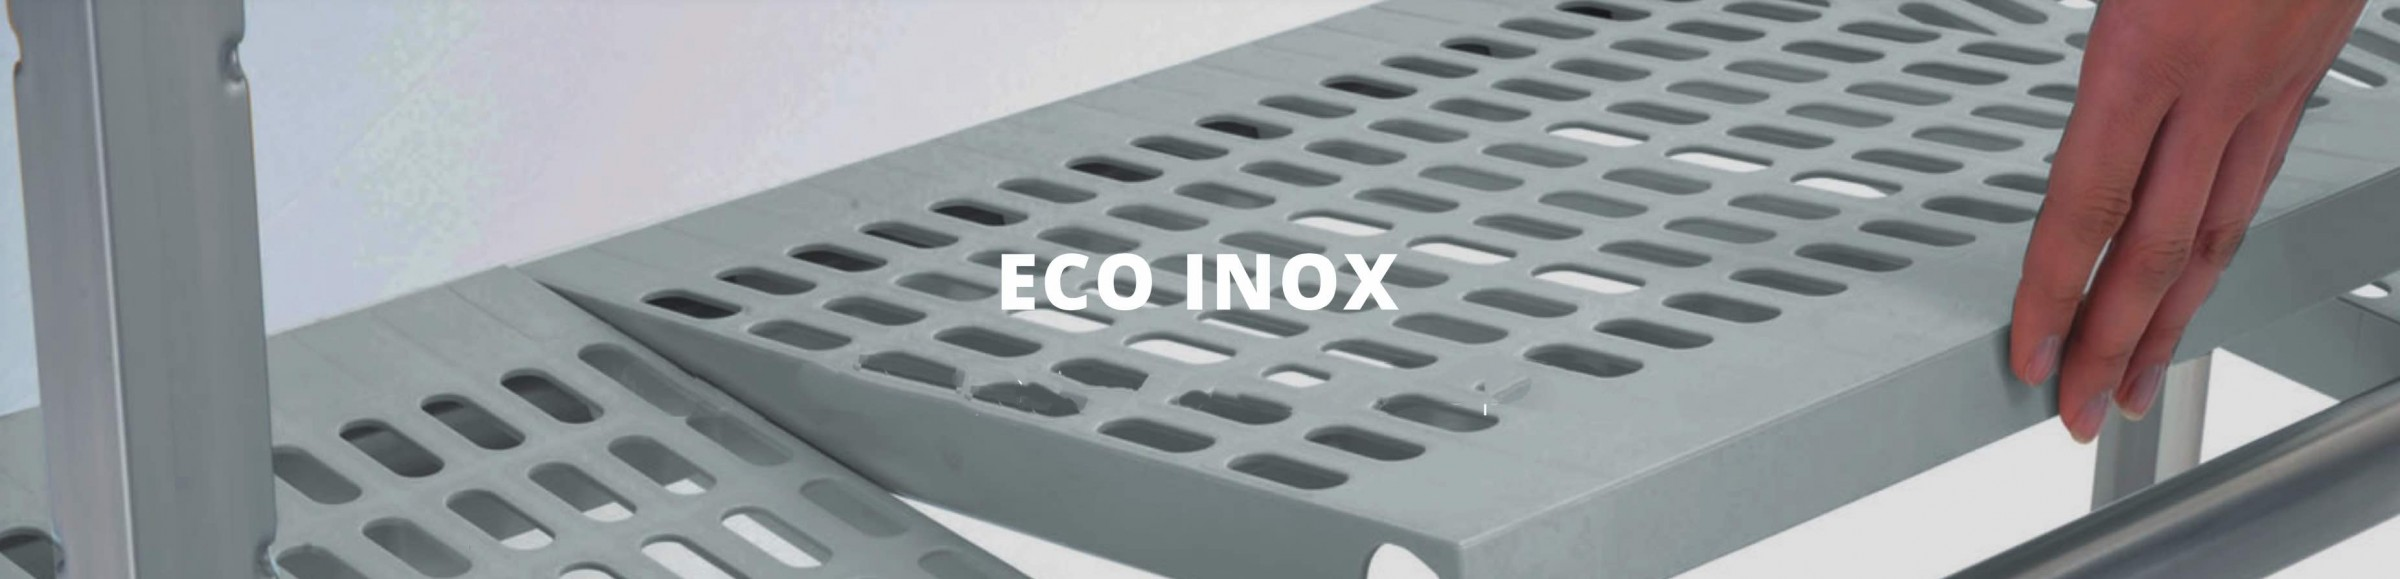 IN-FIX Eco Inox